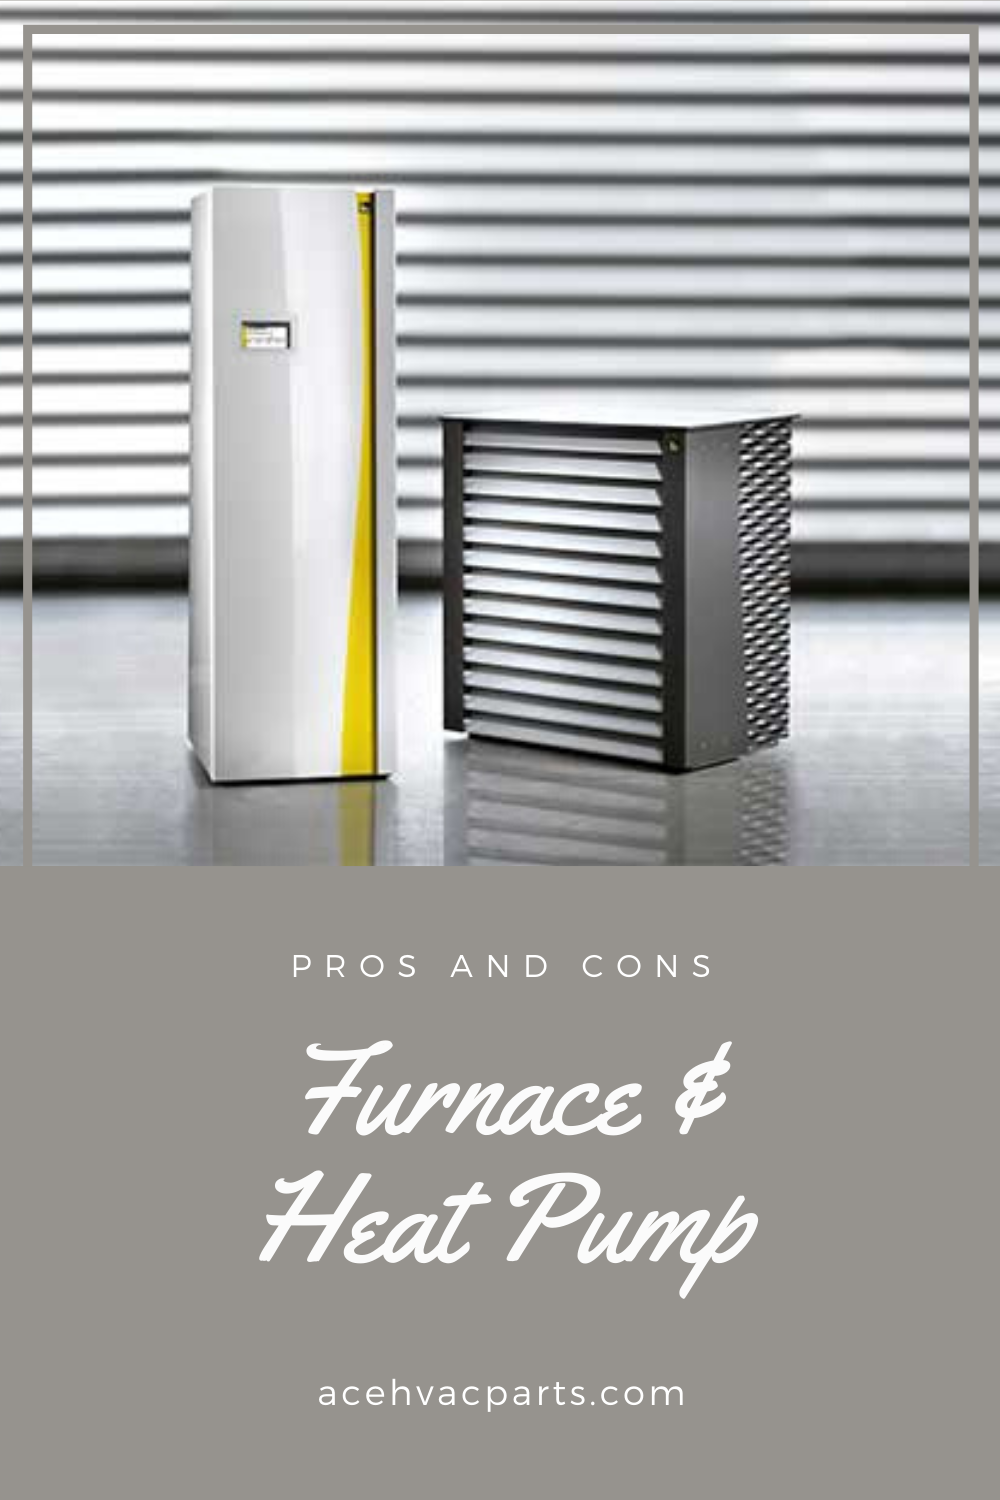 Furnace Heat Pump Pros And Cons All You Need To Know In 2020 Heat Pump Heating Furnace Furnace